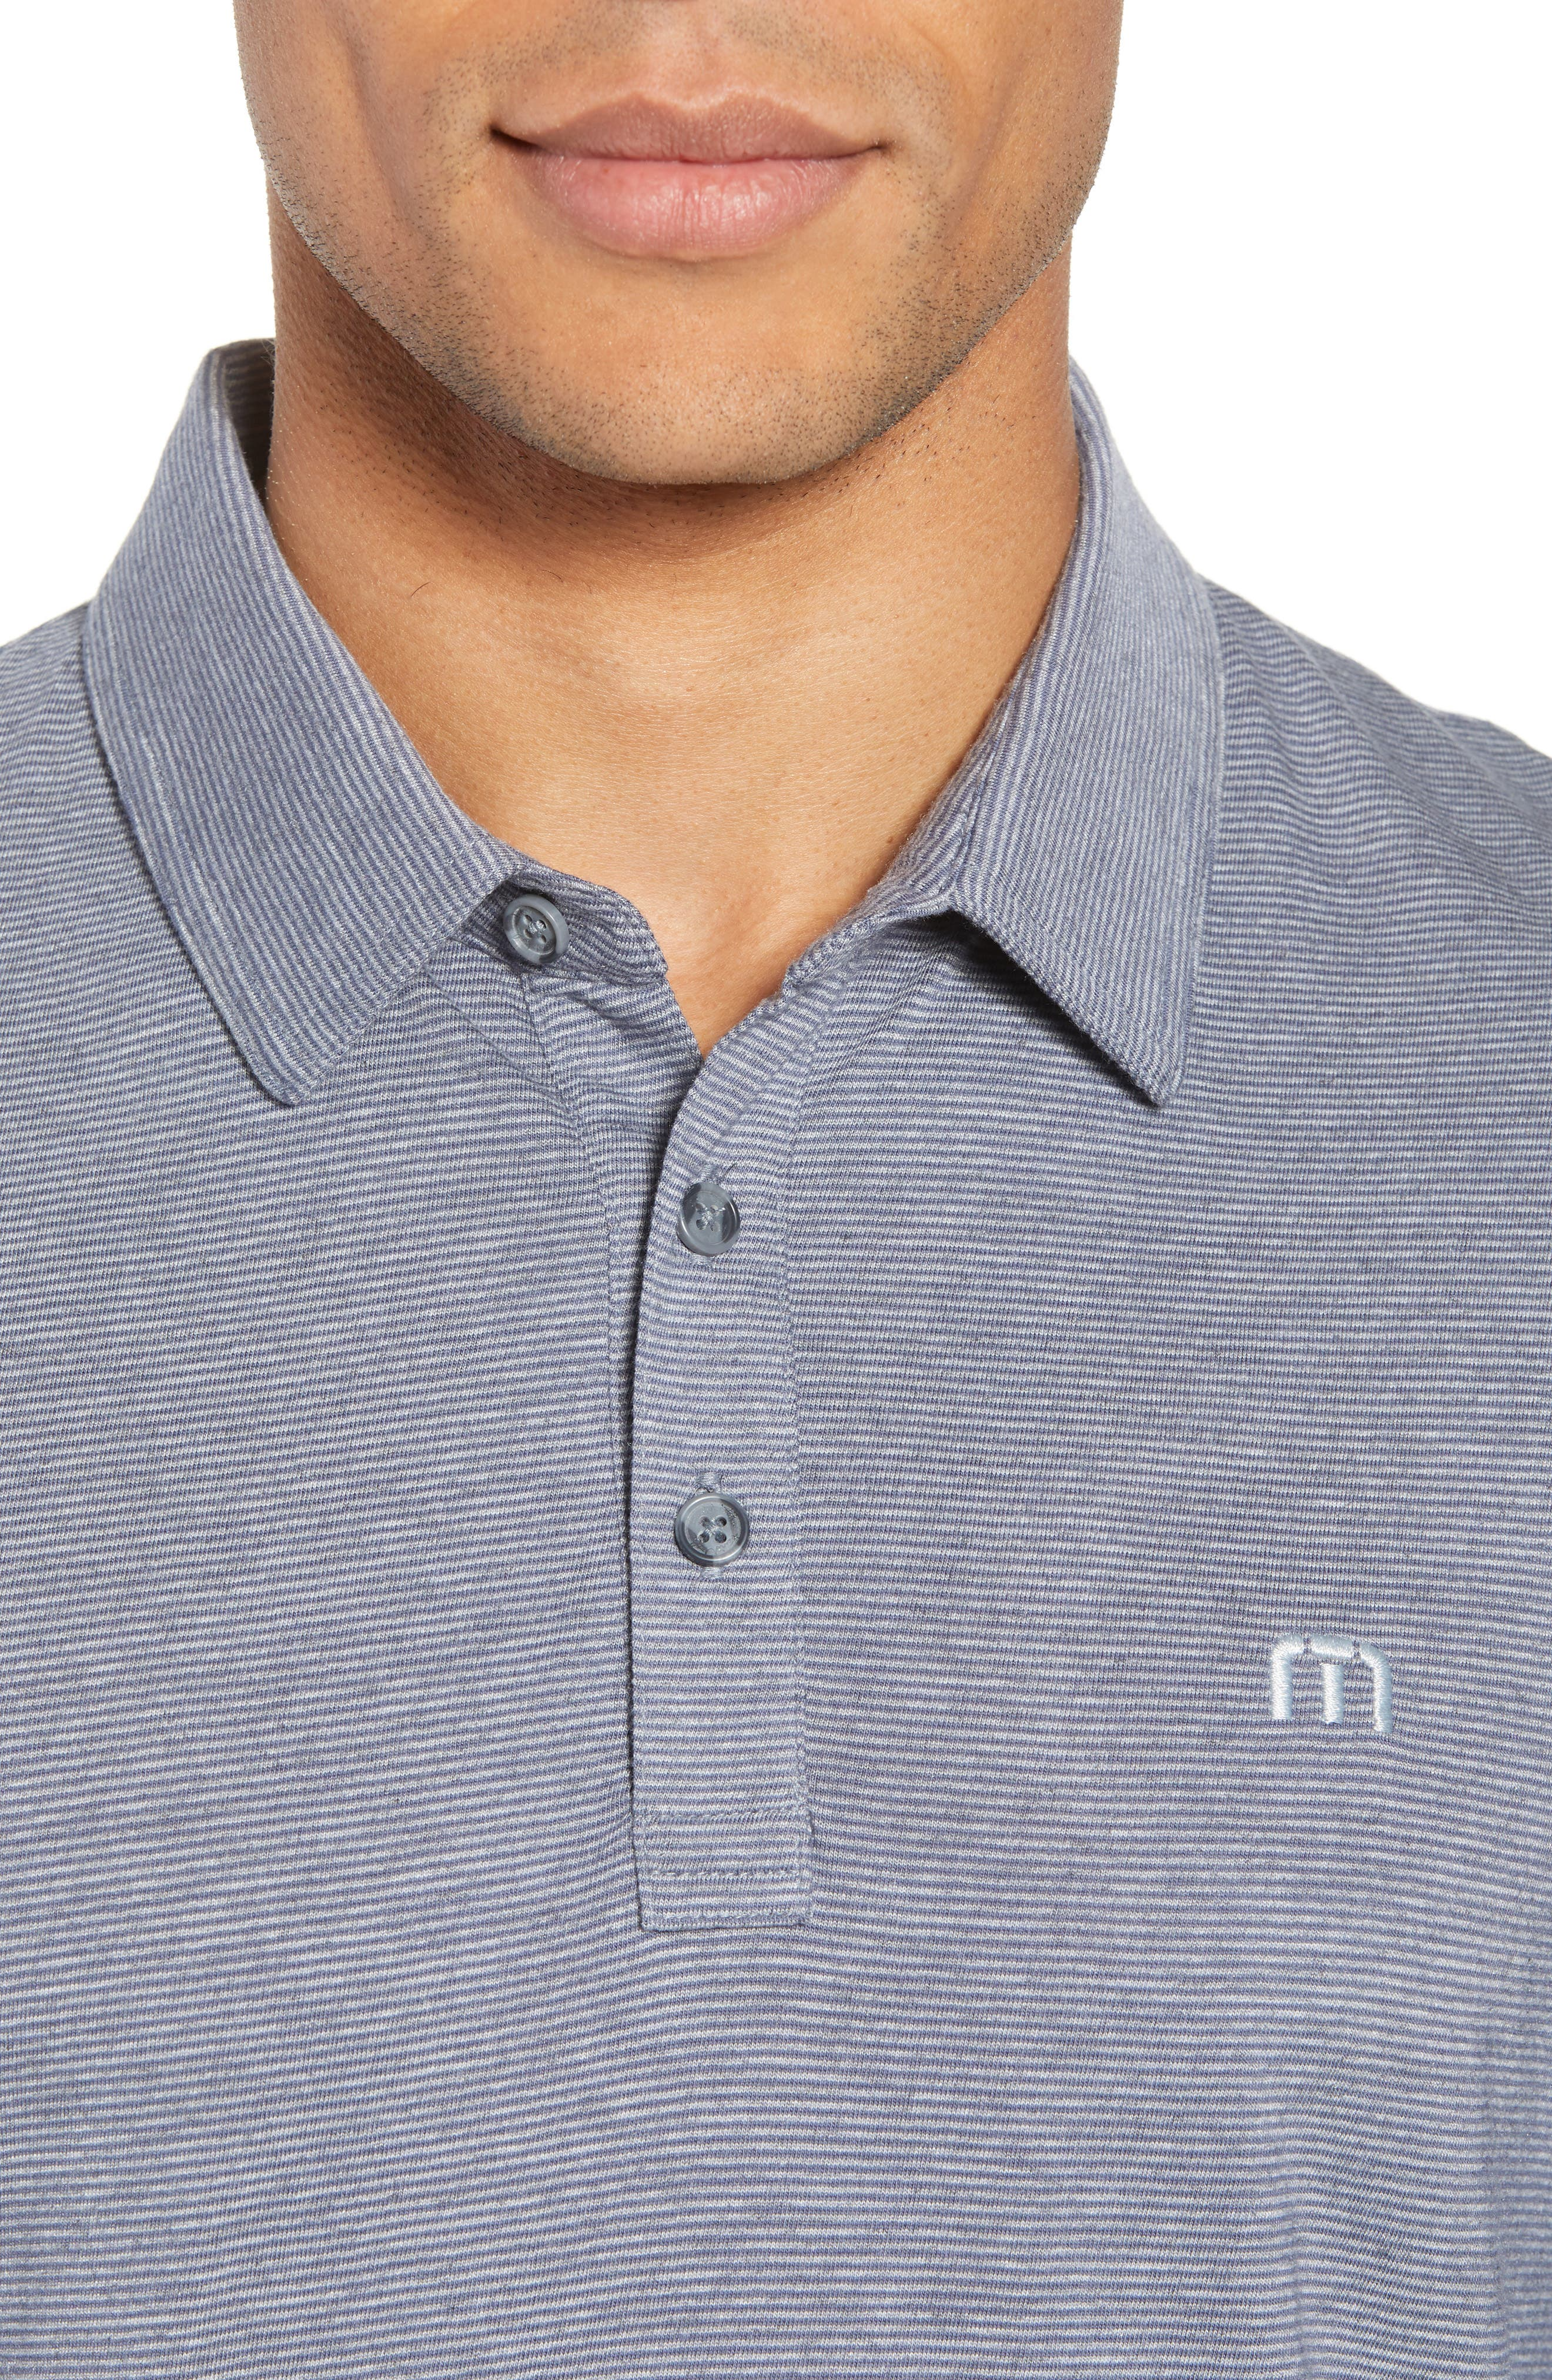 JQ Regular Fit Stripe Polo,                             Alternate thumbnail 4, color,                             Heather Grisaille